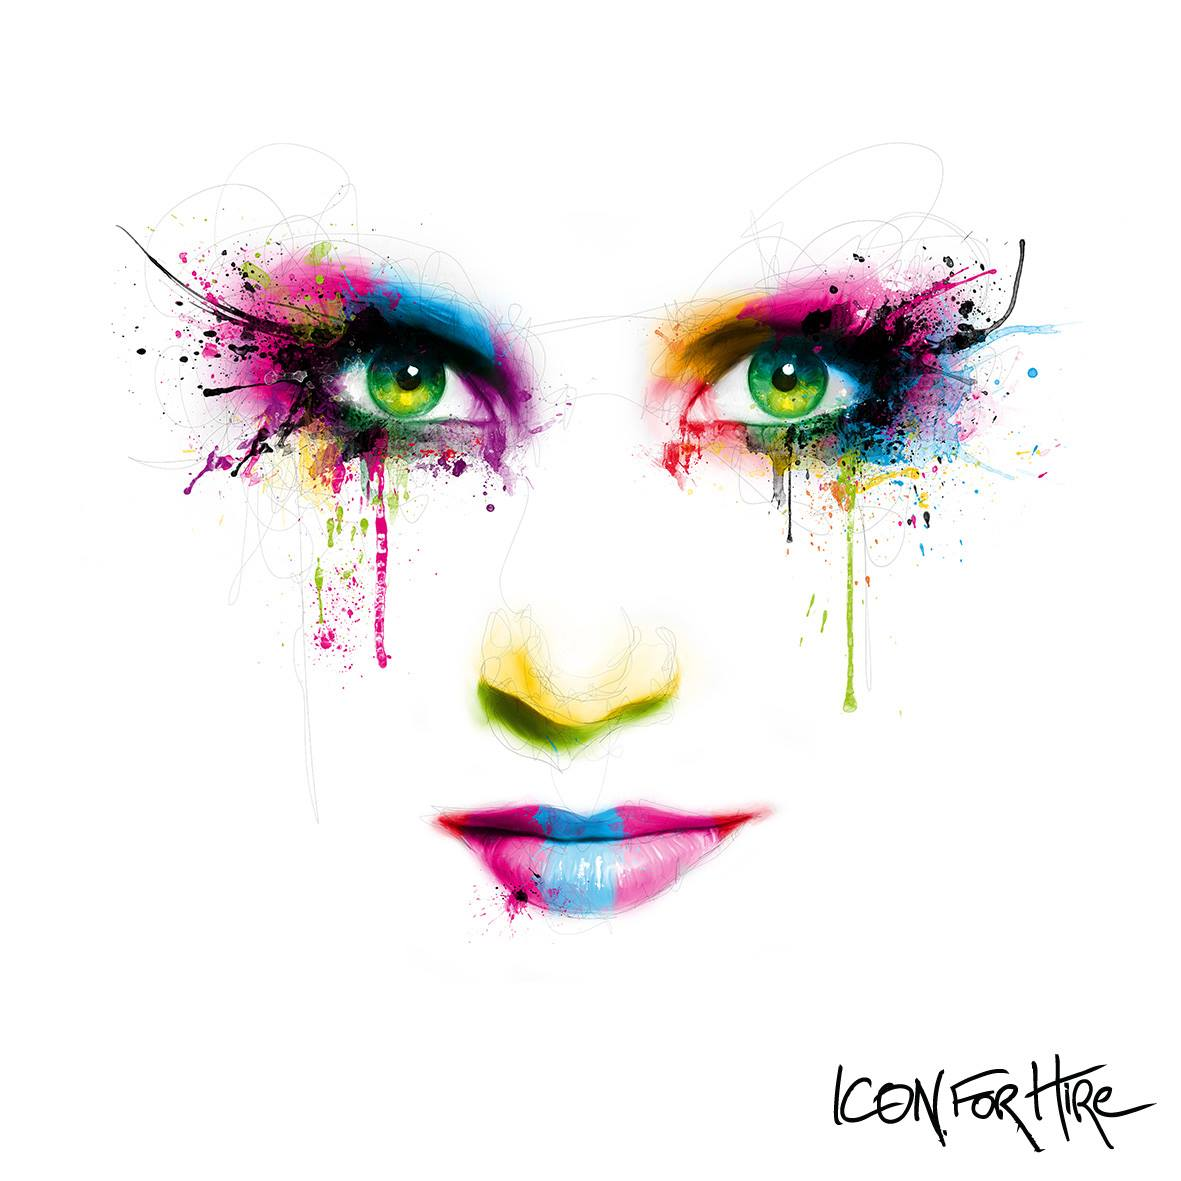 icon for hire icon for hire self titled album 2013.JPG